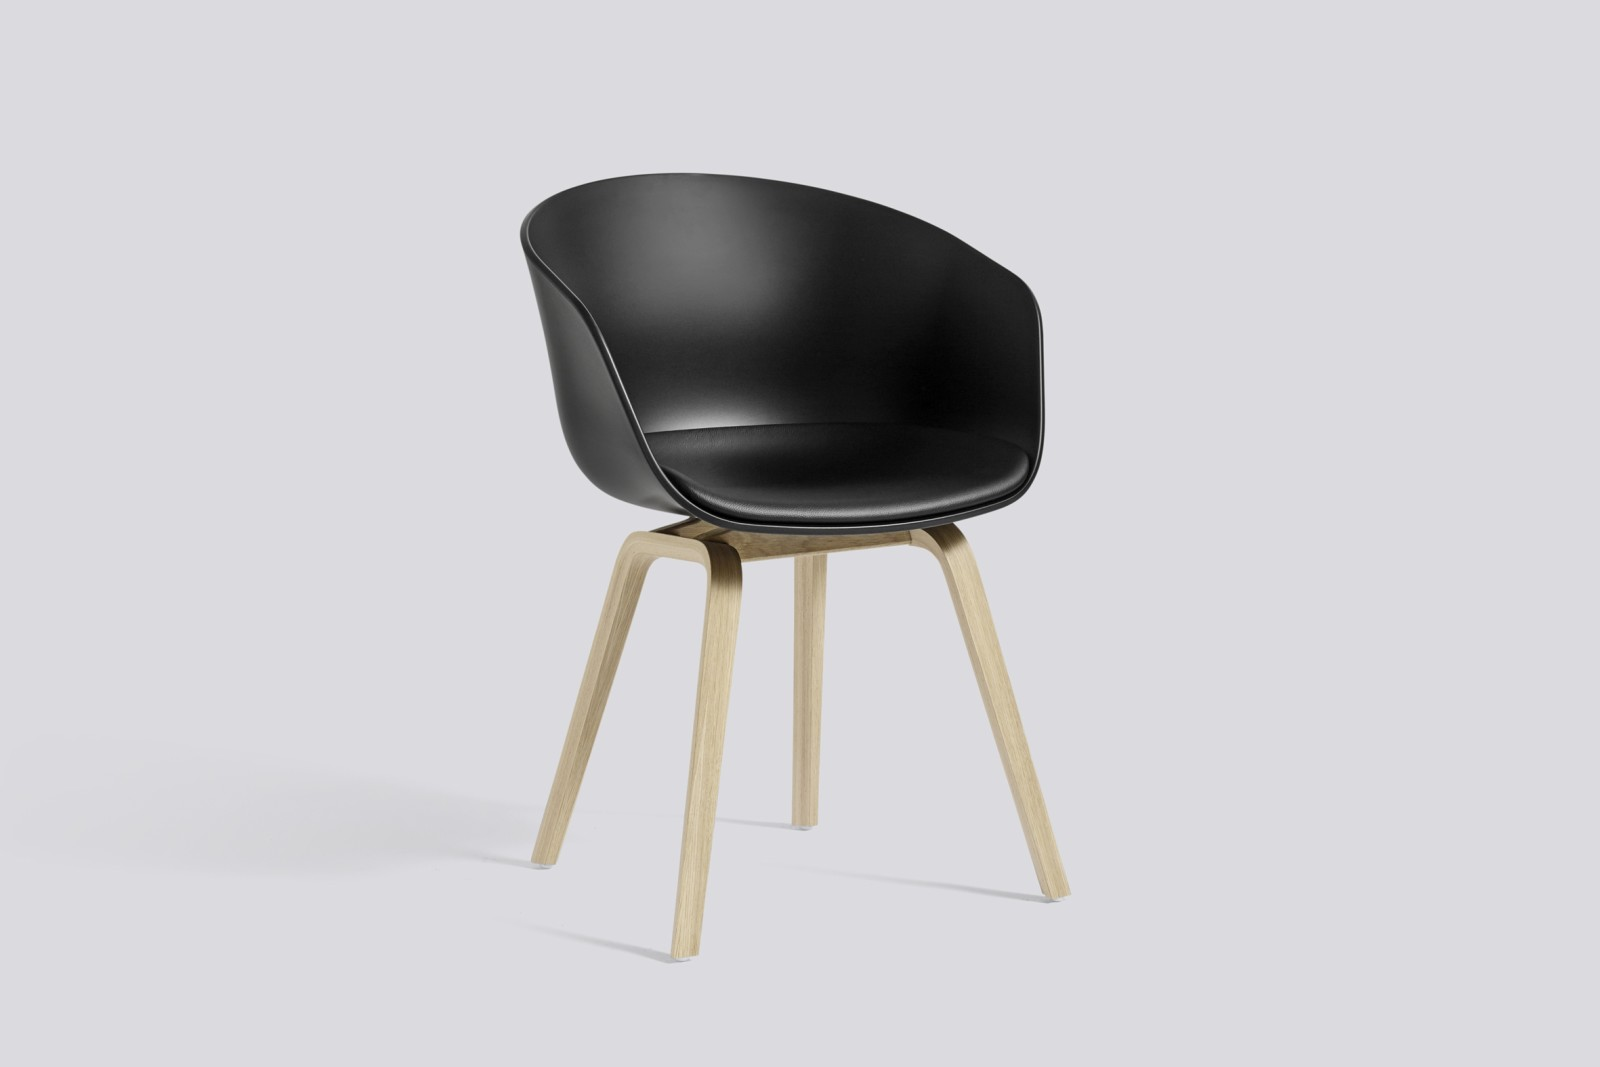 About A Chair AAC22 with fixed seat upholstery Surface by Hay 120, Black, Army Stained Oak Veneer